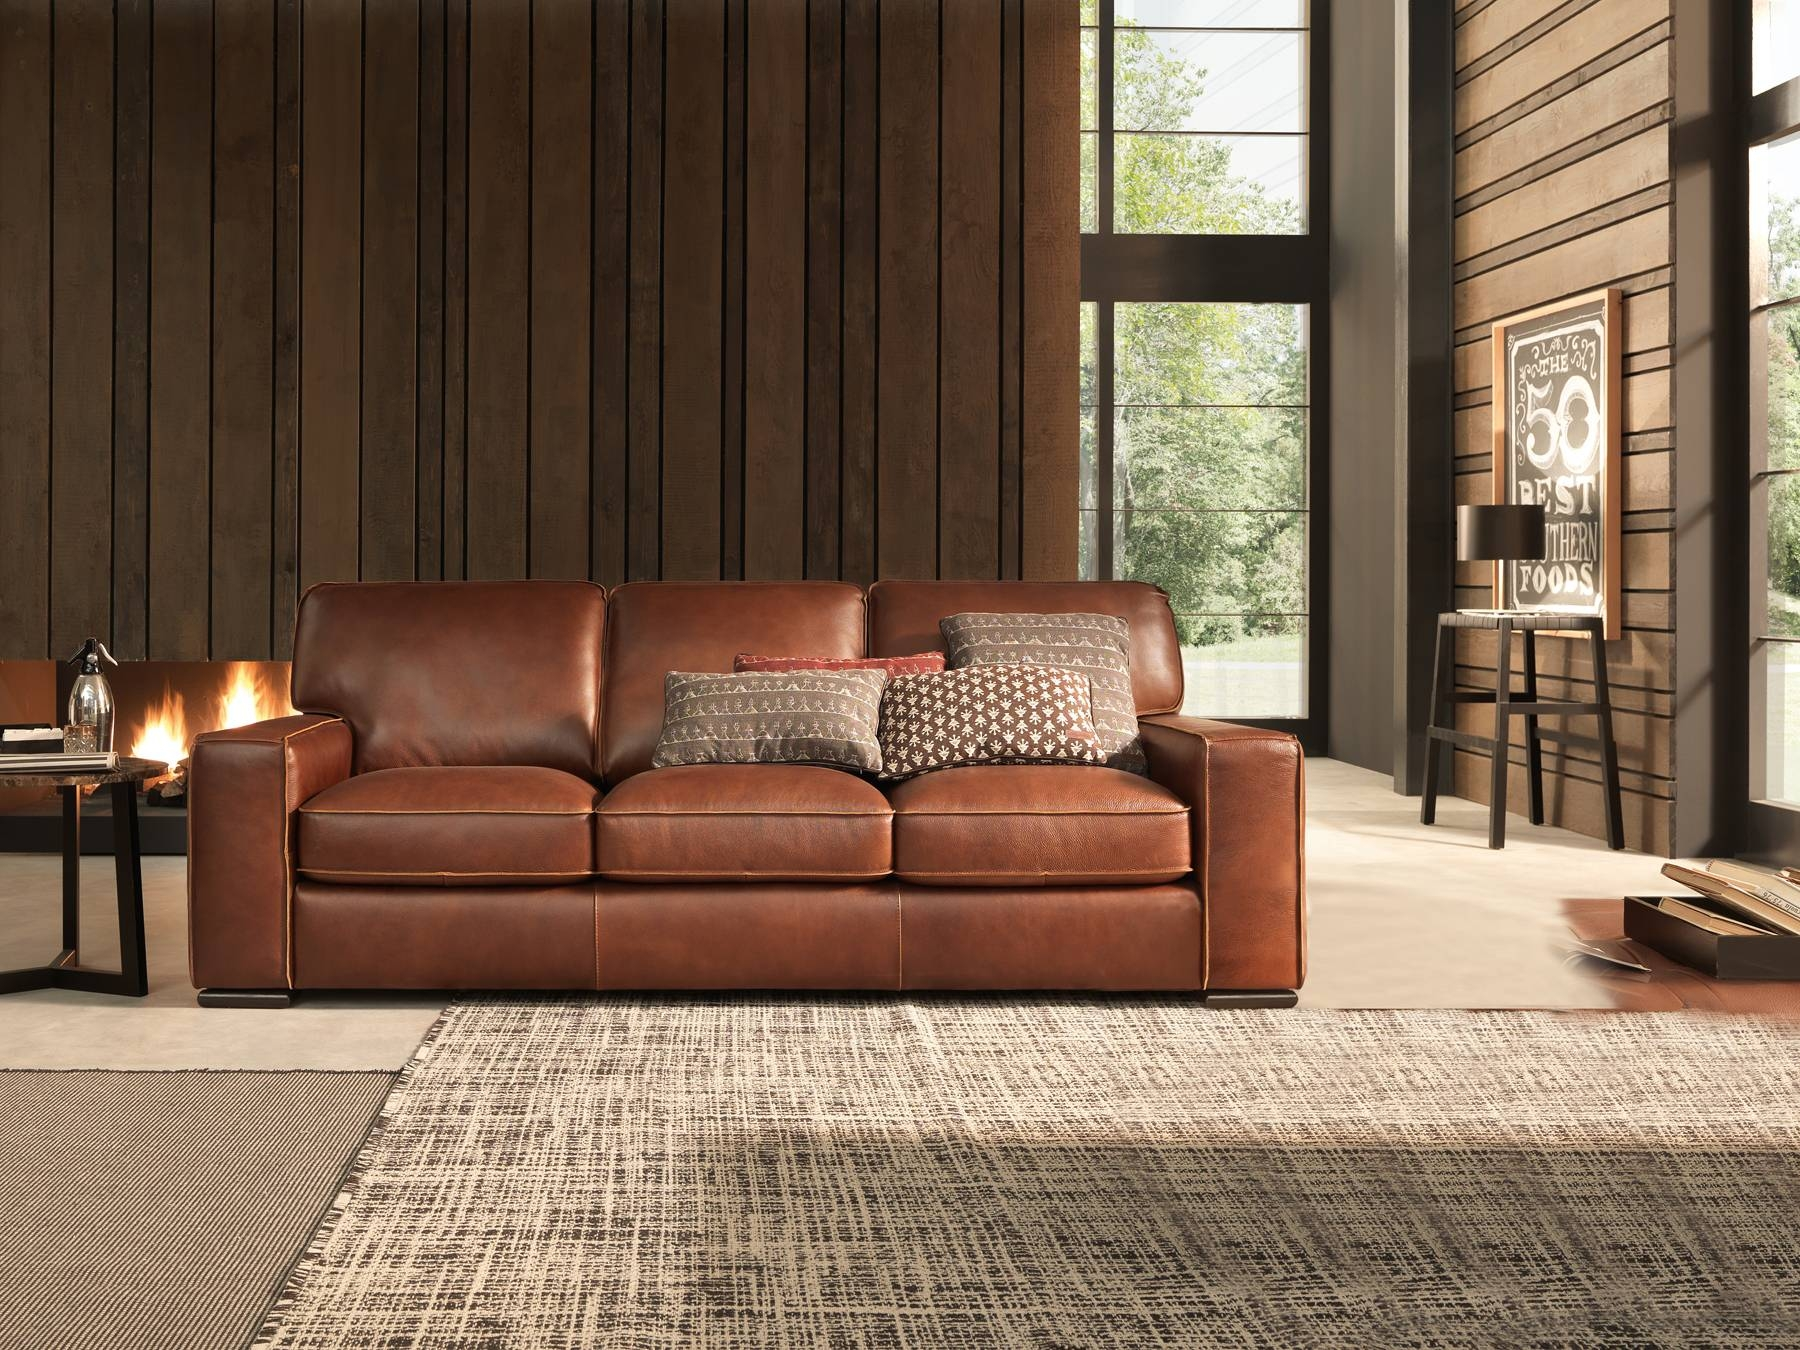 Furniture: Natuzzi Leather Couch | Traditional Leather Sofa within Traditional Leather Couch (Image 10 of 30)